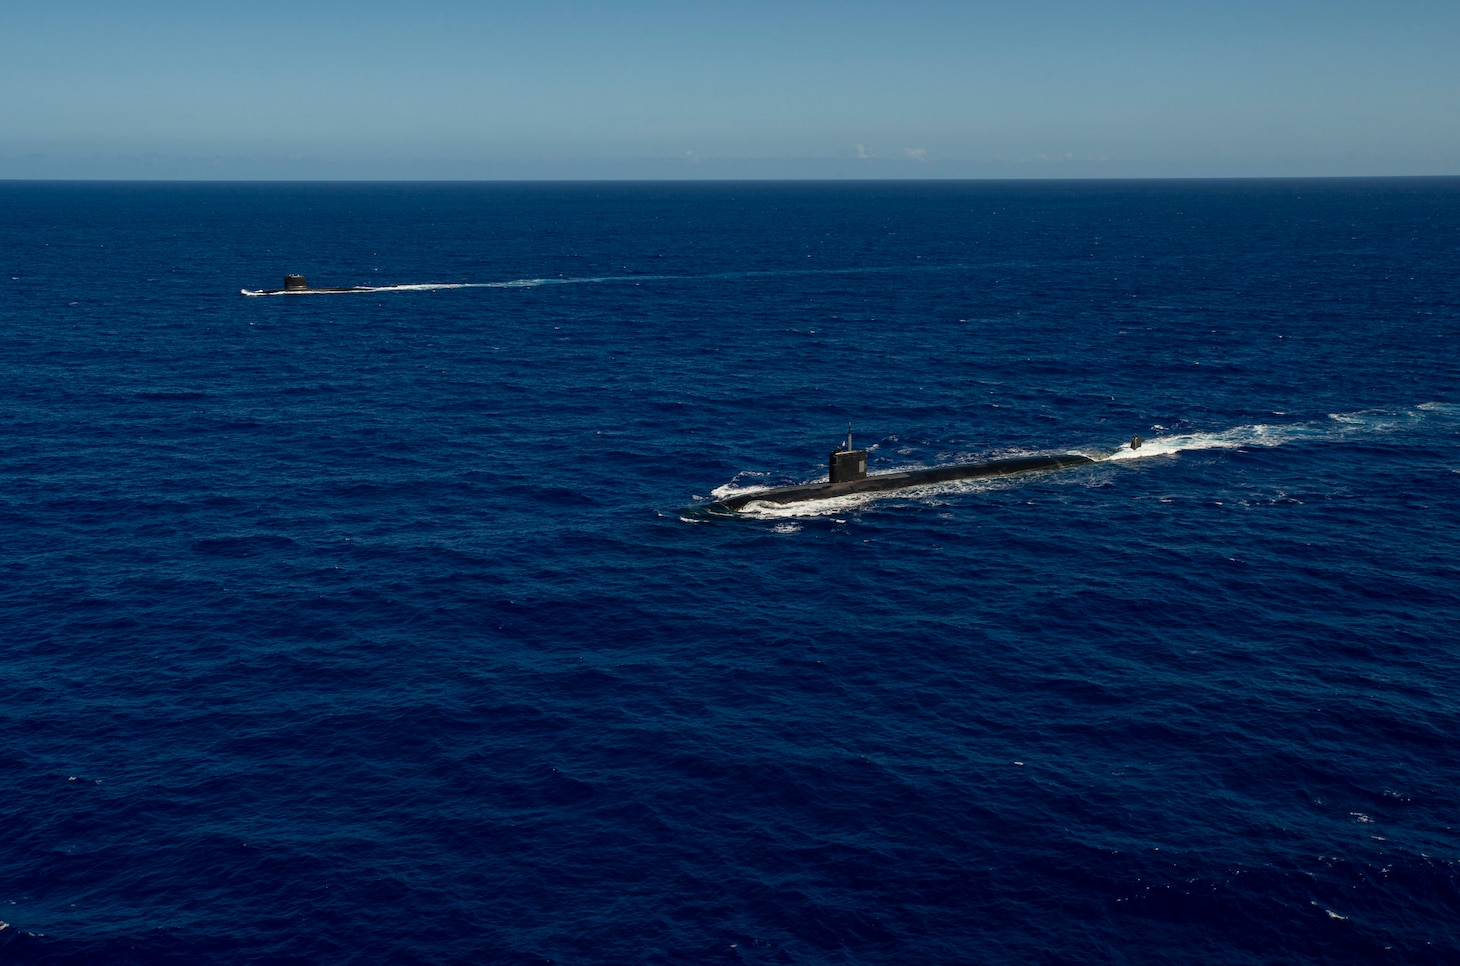 WATERS OFF GUAM (Dec. 11, 2020) The Los Angeles-class fast-attack submarine USS Asheville (SSN 758), right, and the French Navy Rubis-class nuclear powered submarine (SSN) Émeraude steam in formation off the coast of Guam during a photo exercise. Asheville and Émeraude practiced high-end maritime skills in a multitude of disciplines designed to enhance interoperability between maritime forces. Asheville is one of four forward-deployed submarines assigned to Commander, Submarine Squadron 15. (U.S. Navy photo by Mass Communication Specialist 2nd Class Kelsey J. Hockenberger)